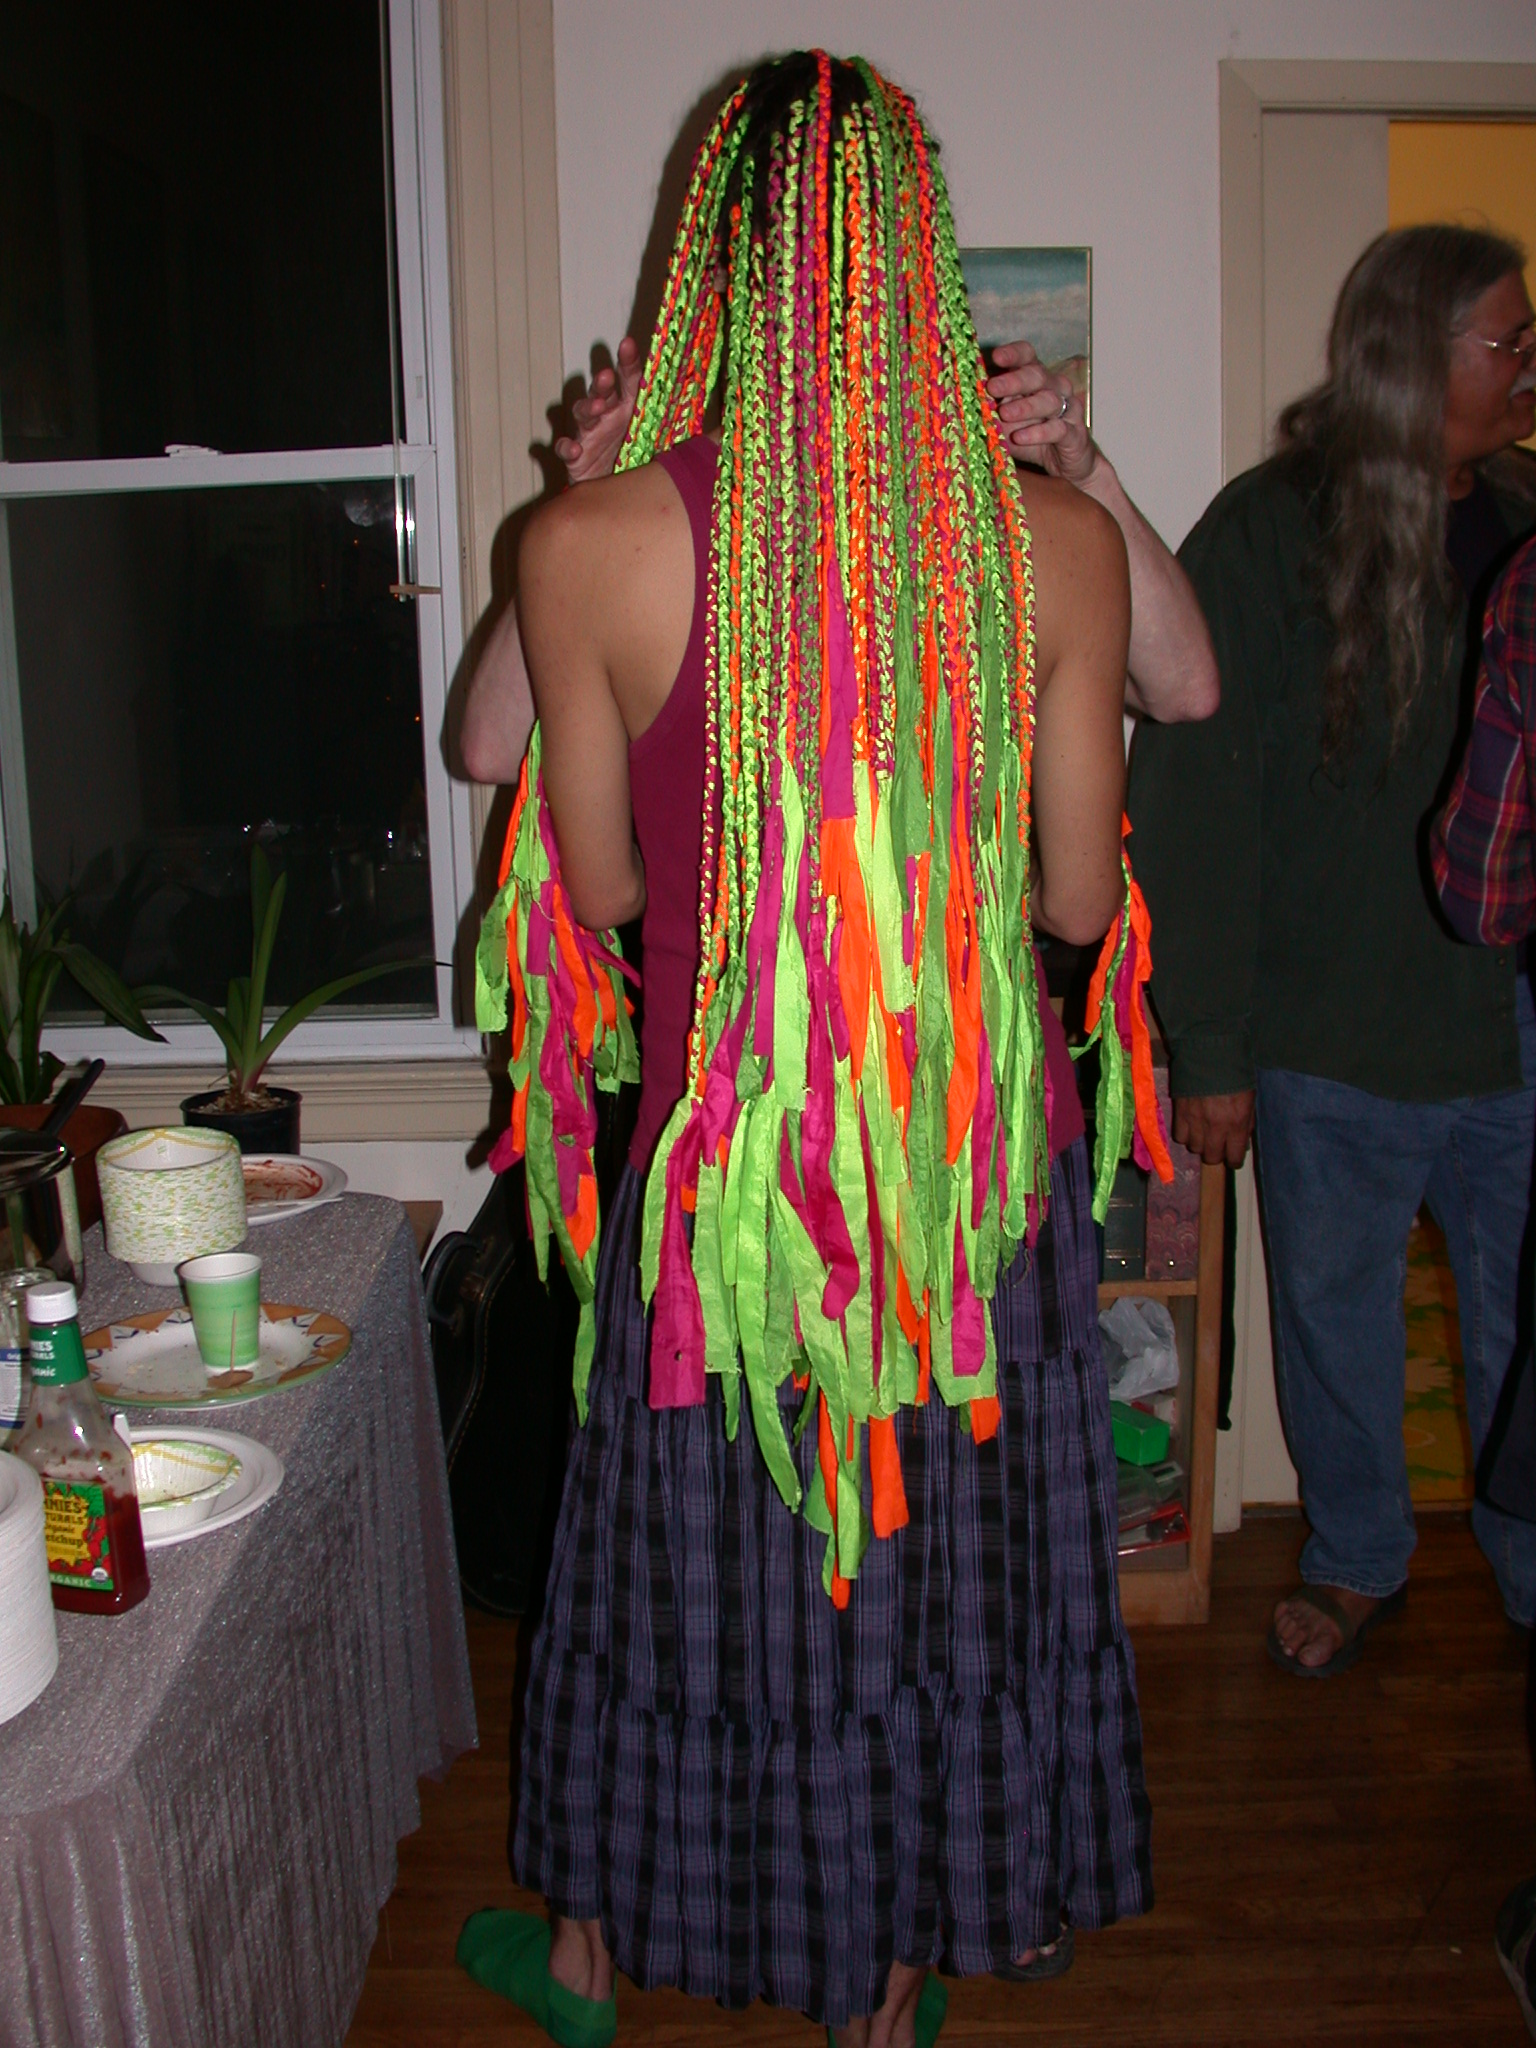 More of Keleb Colorful Dreads